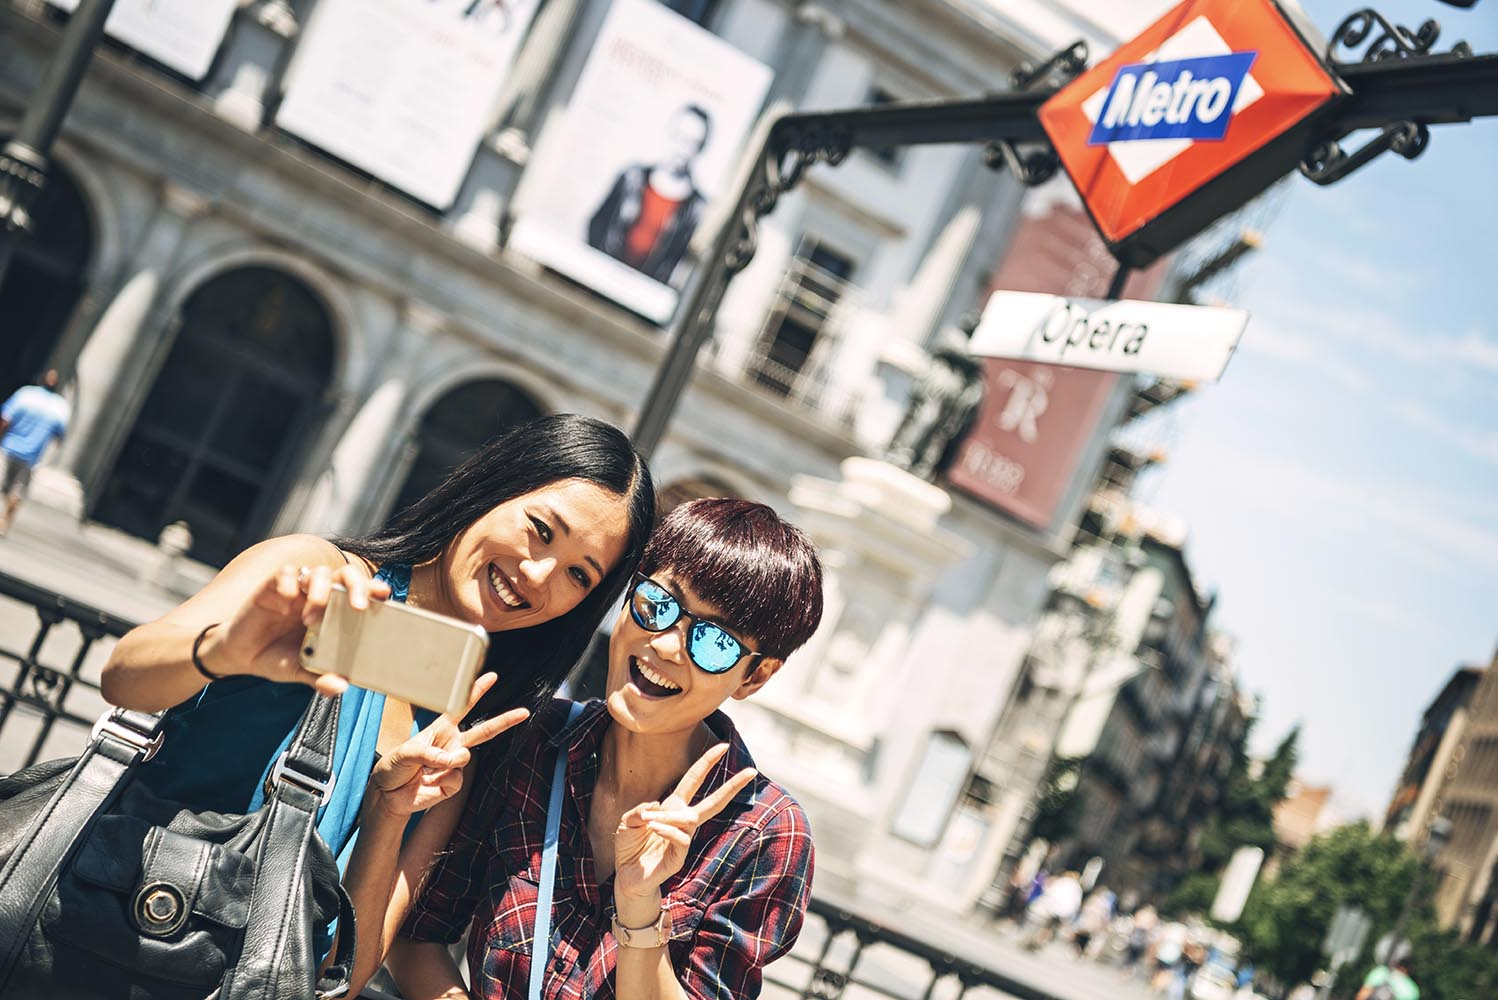 Lovely tourists taking selfie on street